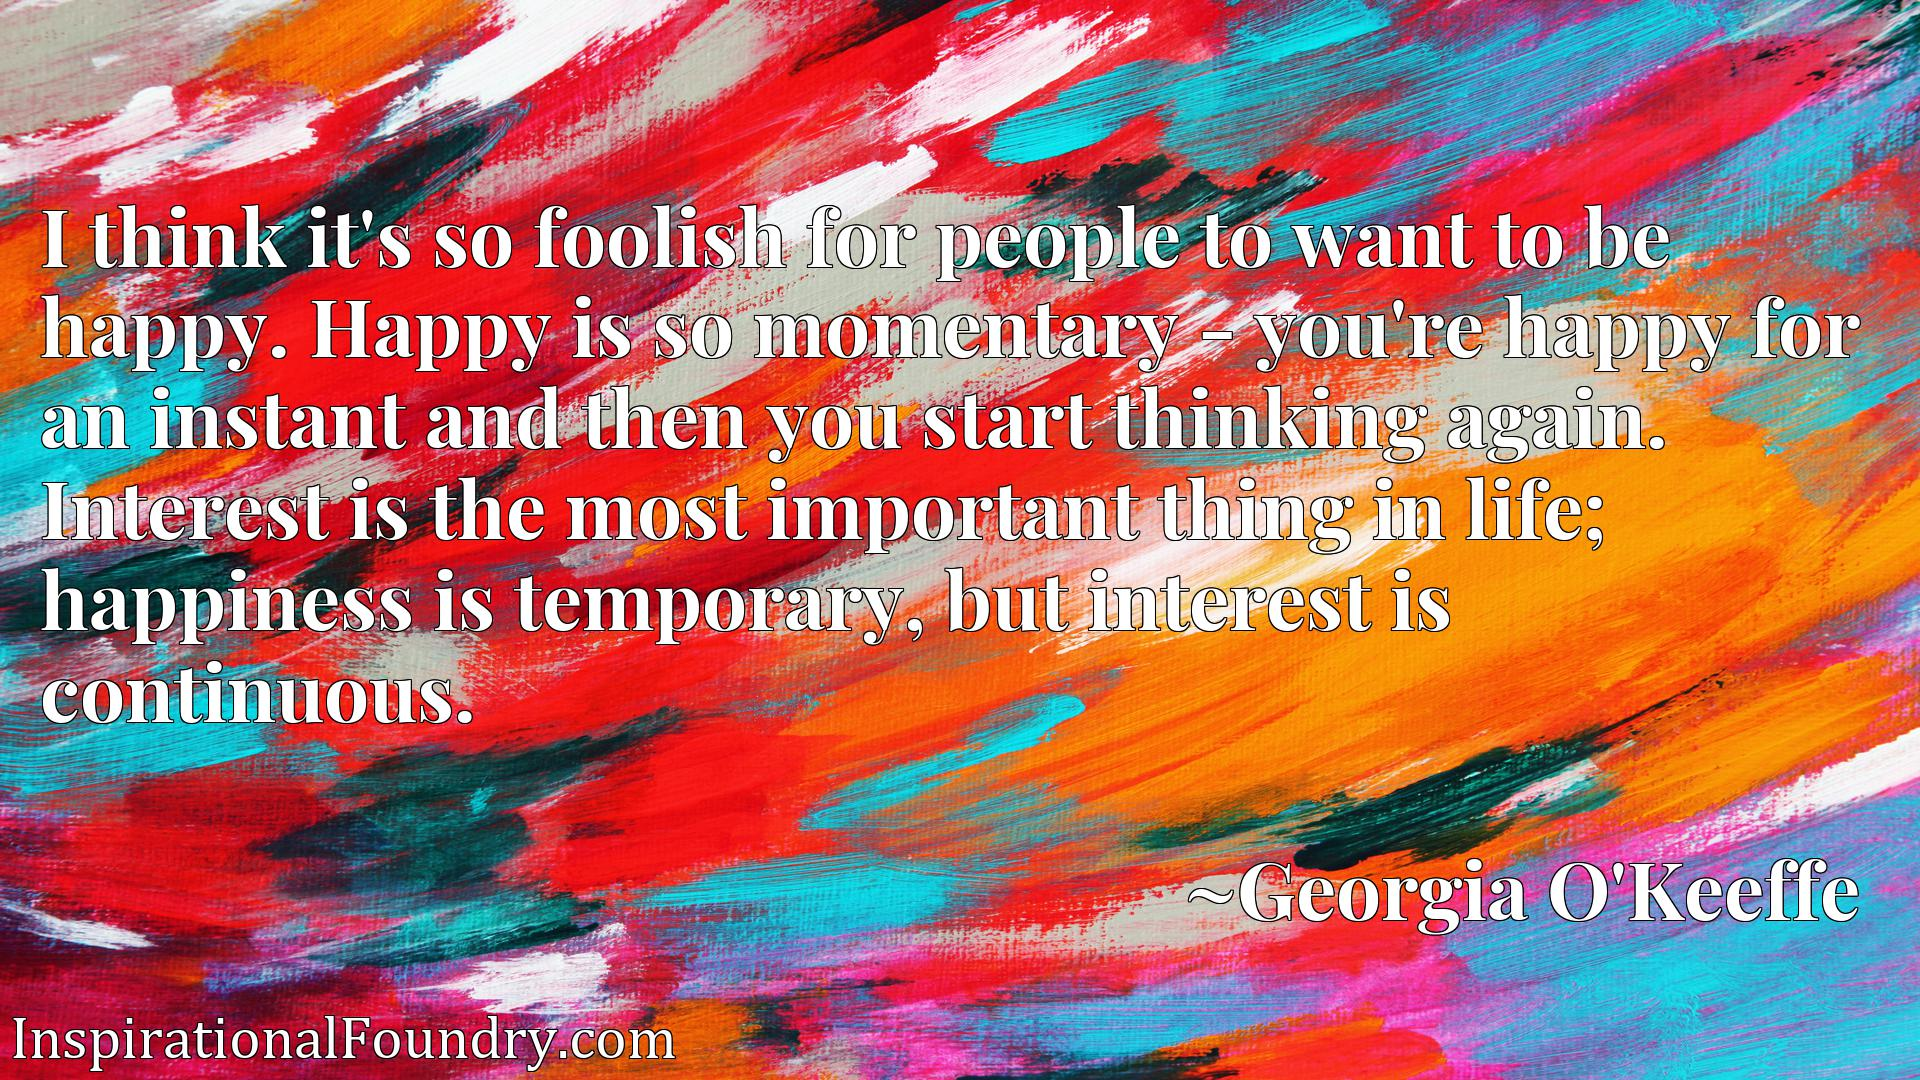 Quote Picture :I think it's so foolish for people to want to be happy. Happy is so momentary - you're happy for an instant and then you start thinking again. Interest is the most important thing in life; happiness is temporary, but interest is continuous.